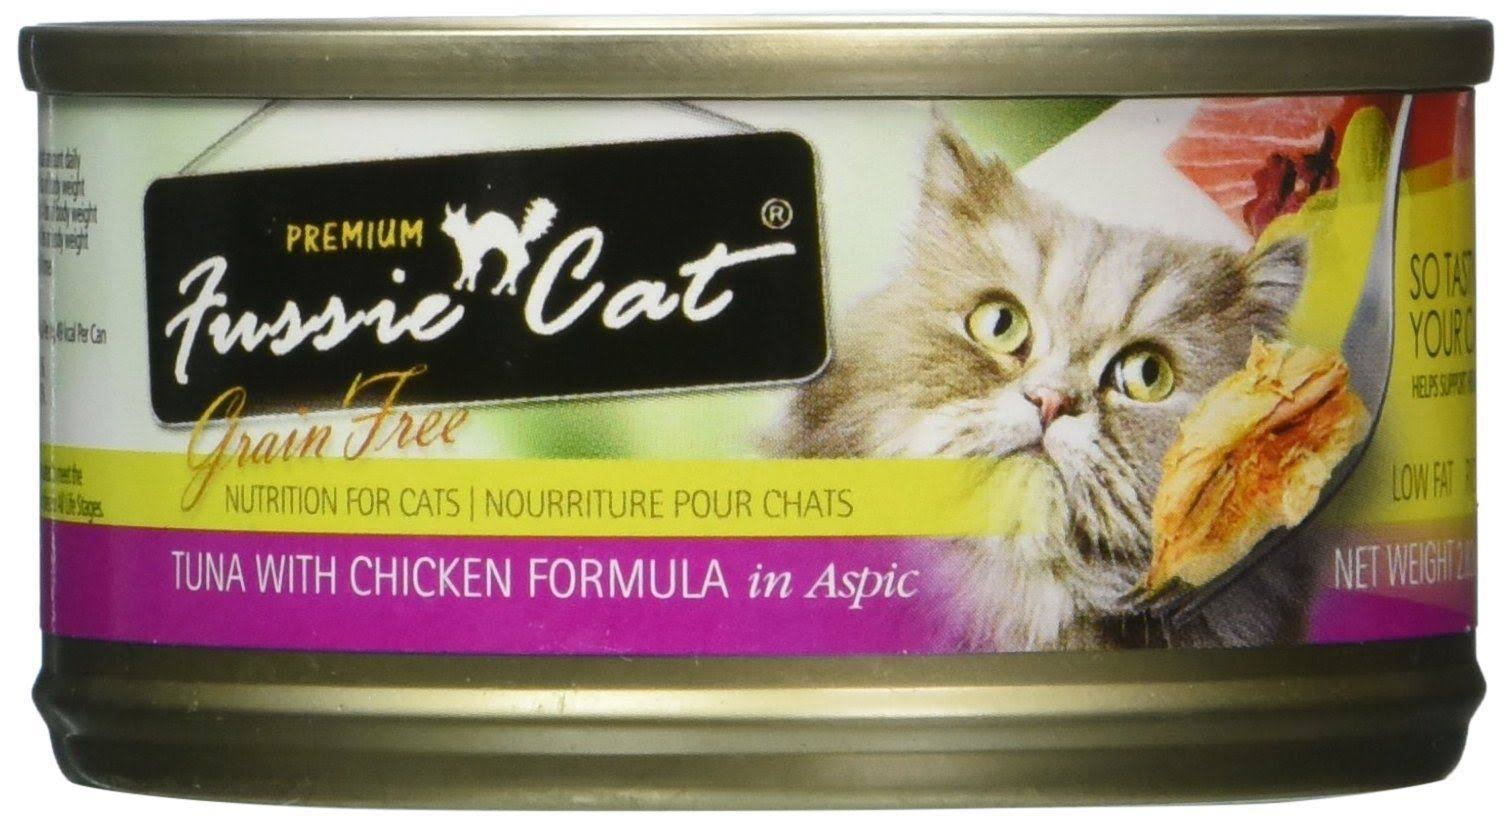 Fussie Cat Grain Free Tuna & Chicken Canned Cat Food - 2.8 oz